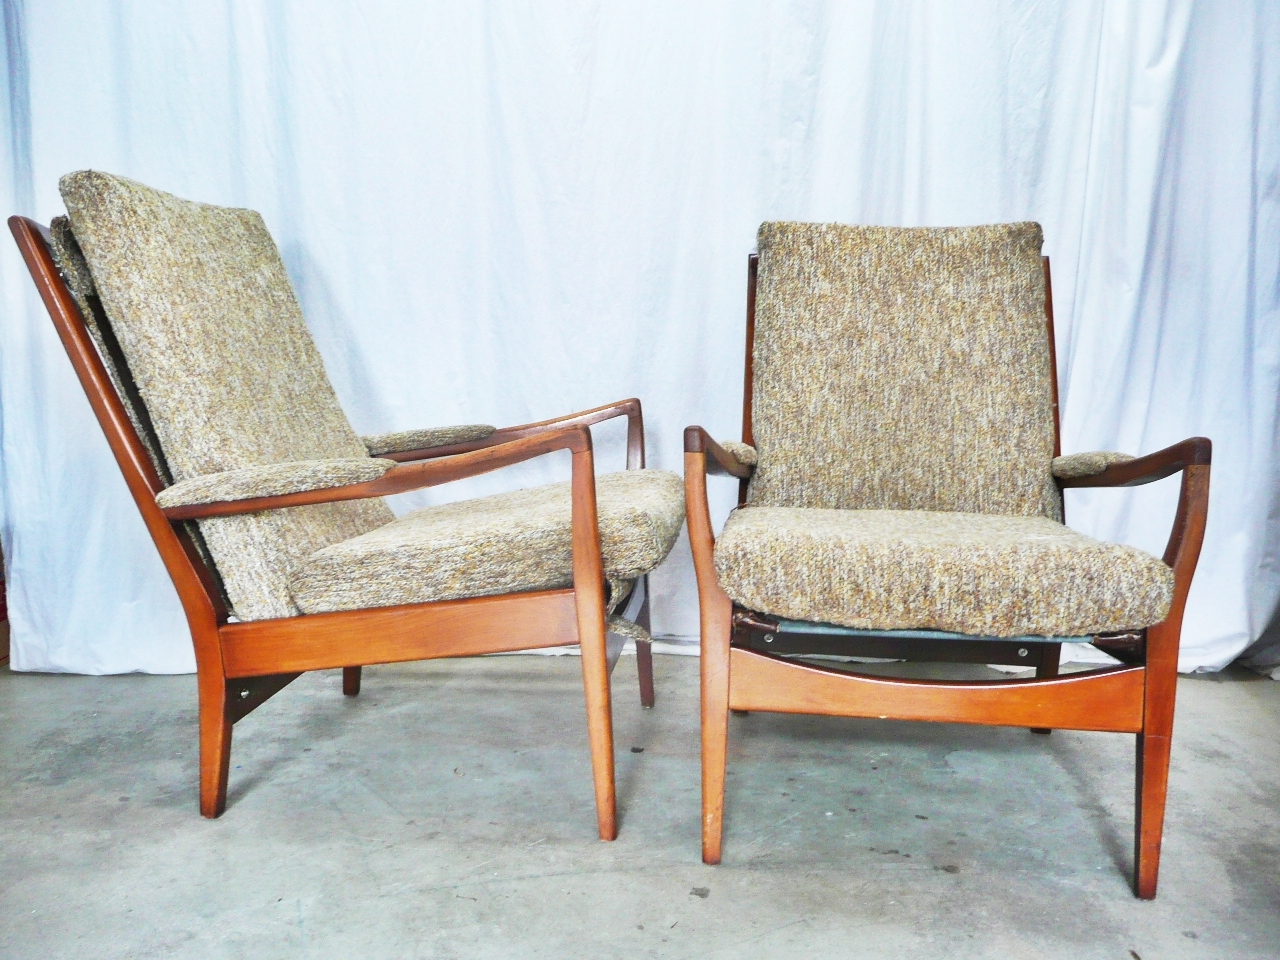 Stunning Common Cintique Fabric Chairs Pertaining To Modern Mid Century Danish Vintage Furniture Shop Used (Image 13 of 15)